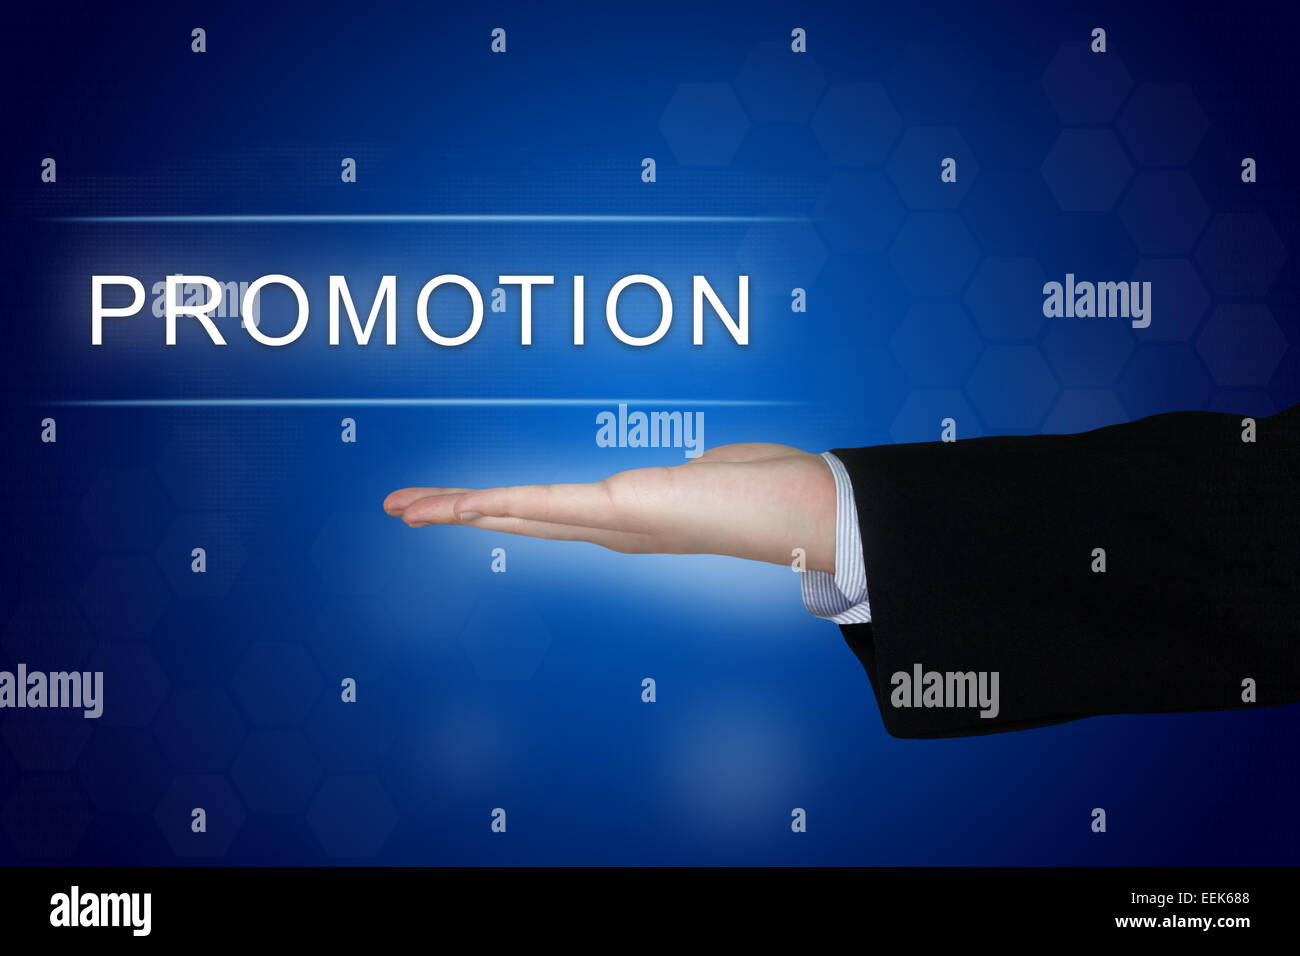 promotion button with business hand on blue background - Stock Image